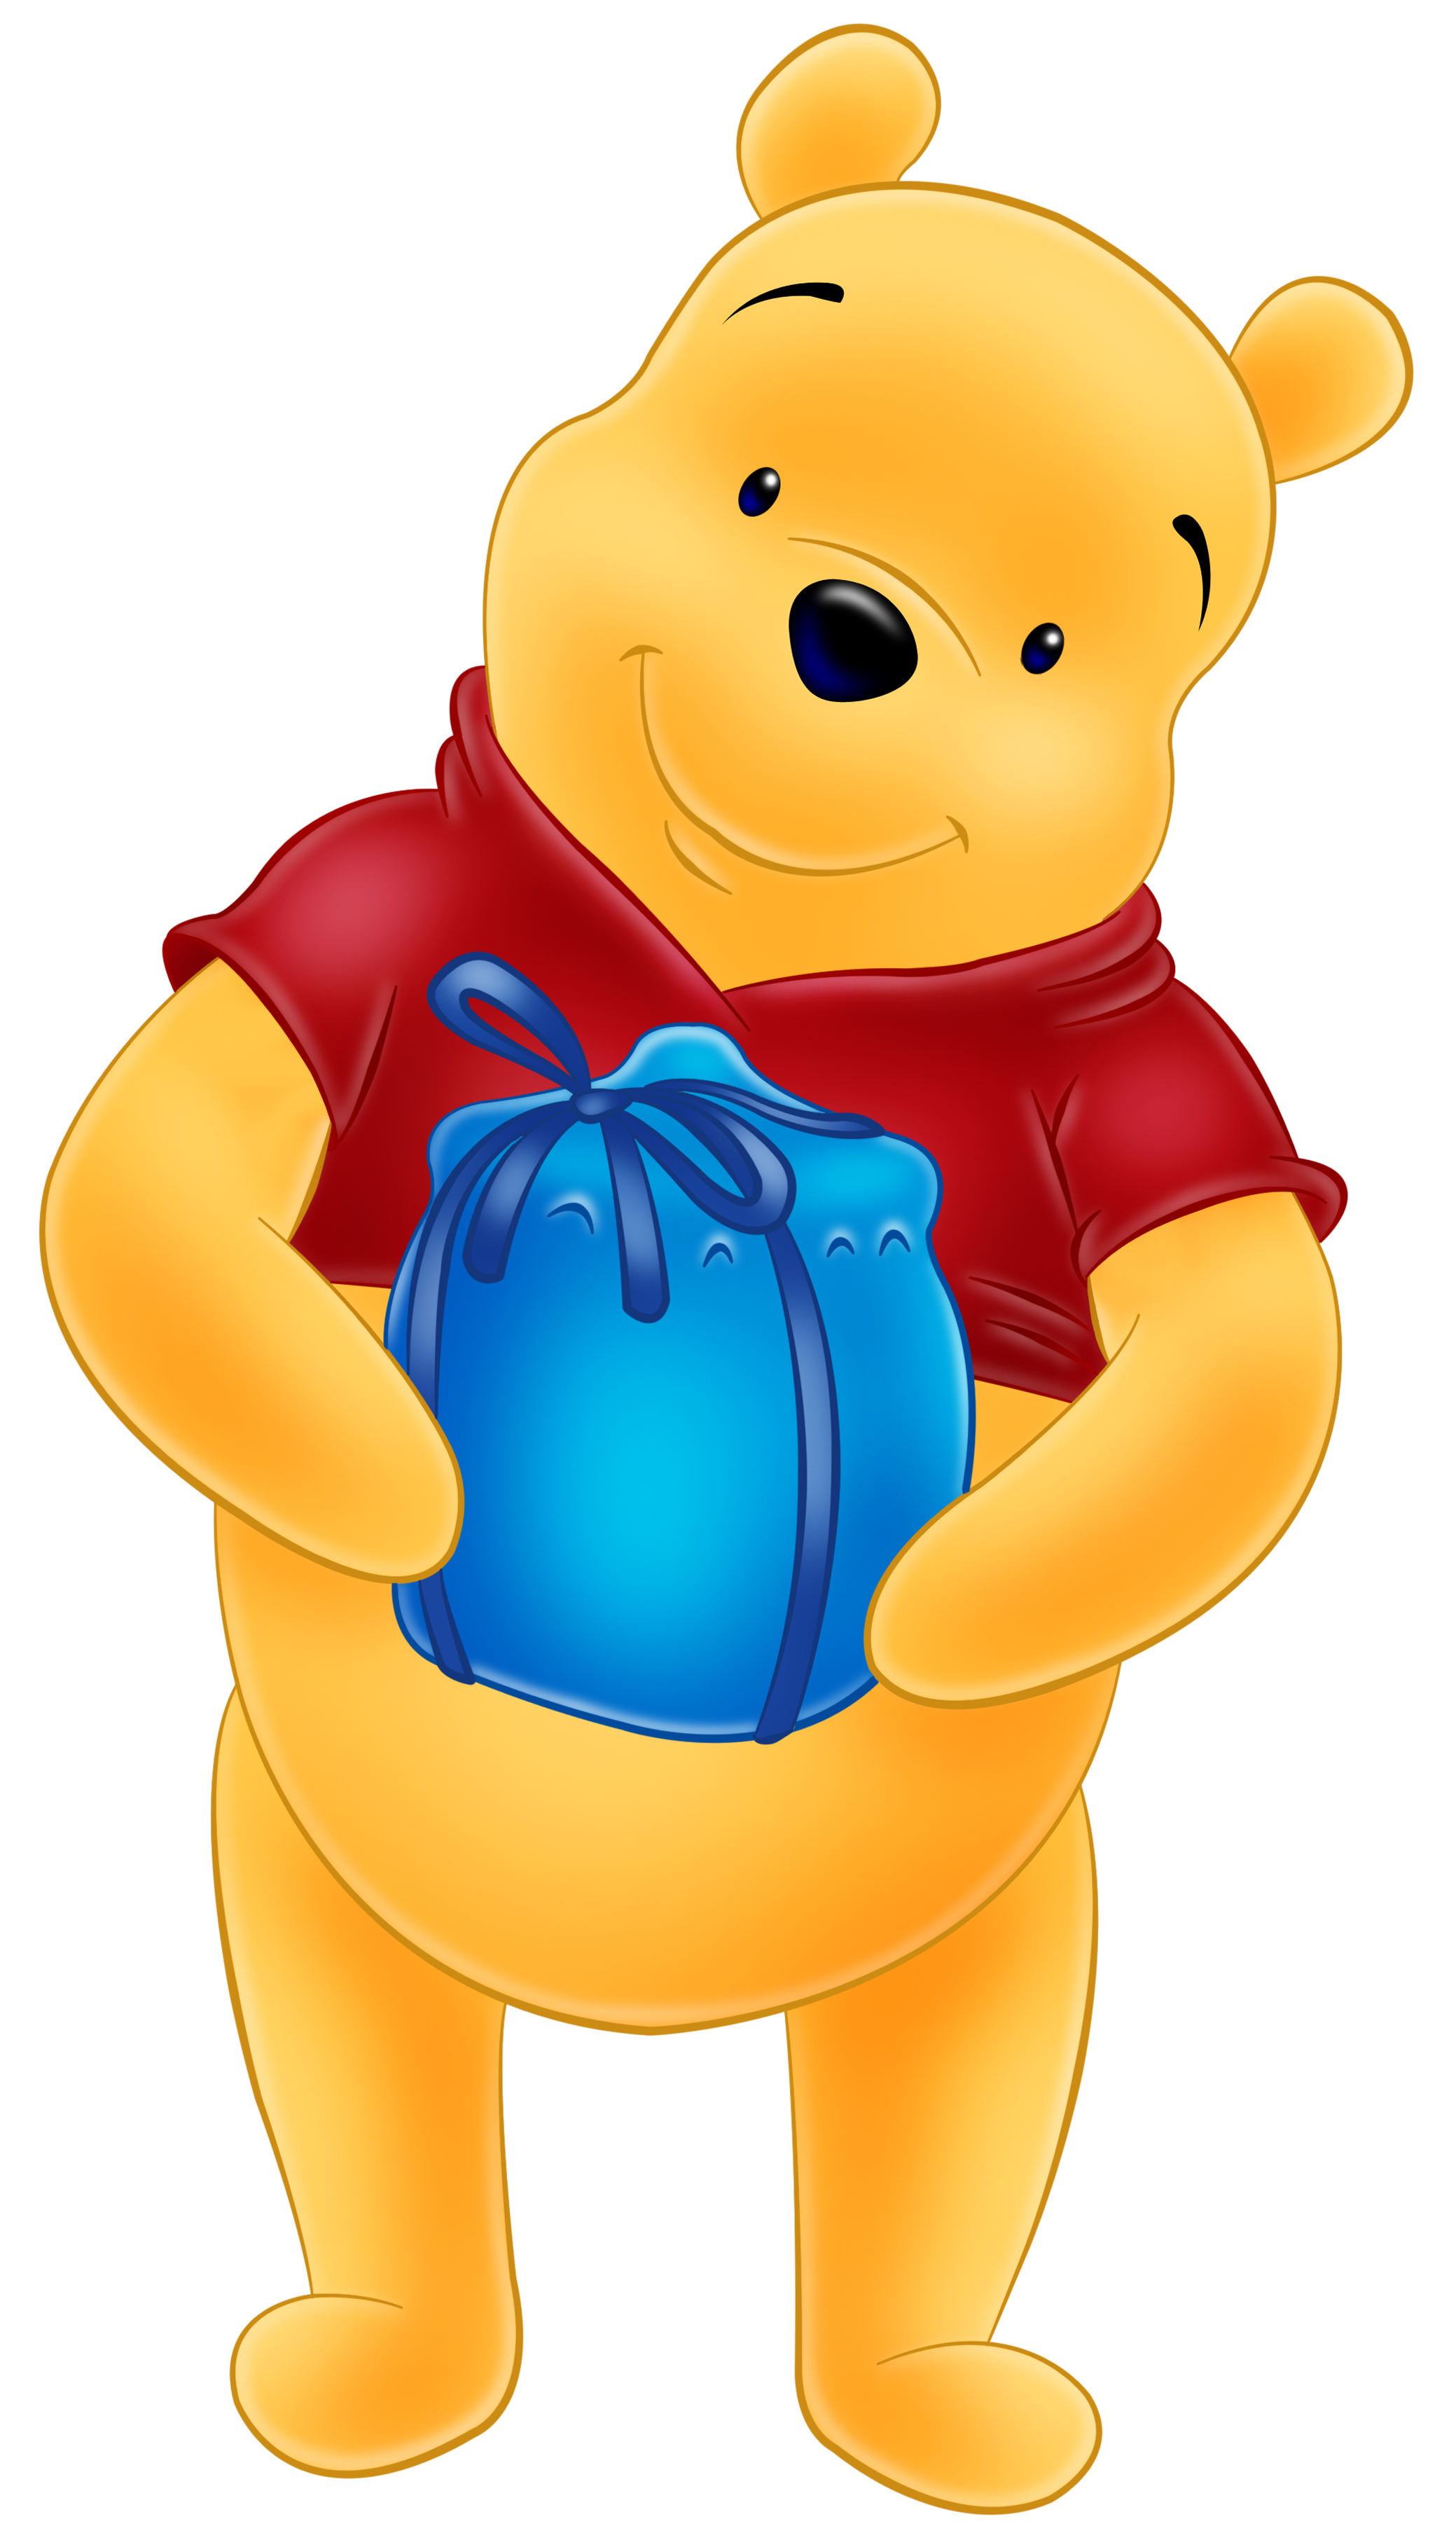 winnie the pooh birthday clipart at getdrawings com free for rh getdrawings com Winnie the Pooh Birthday Quotes Winnie the Pooh Border Clip Art